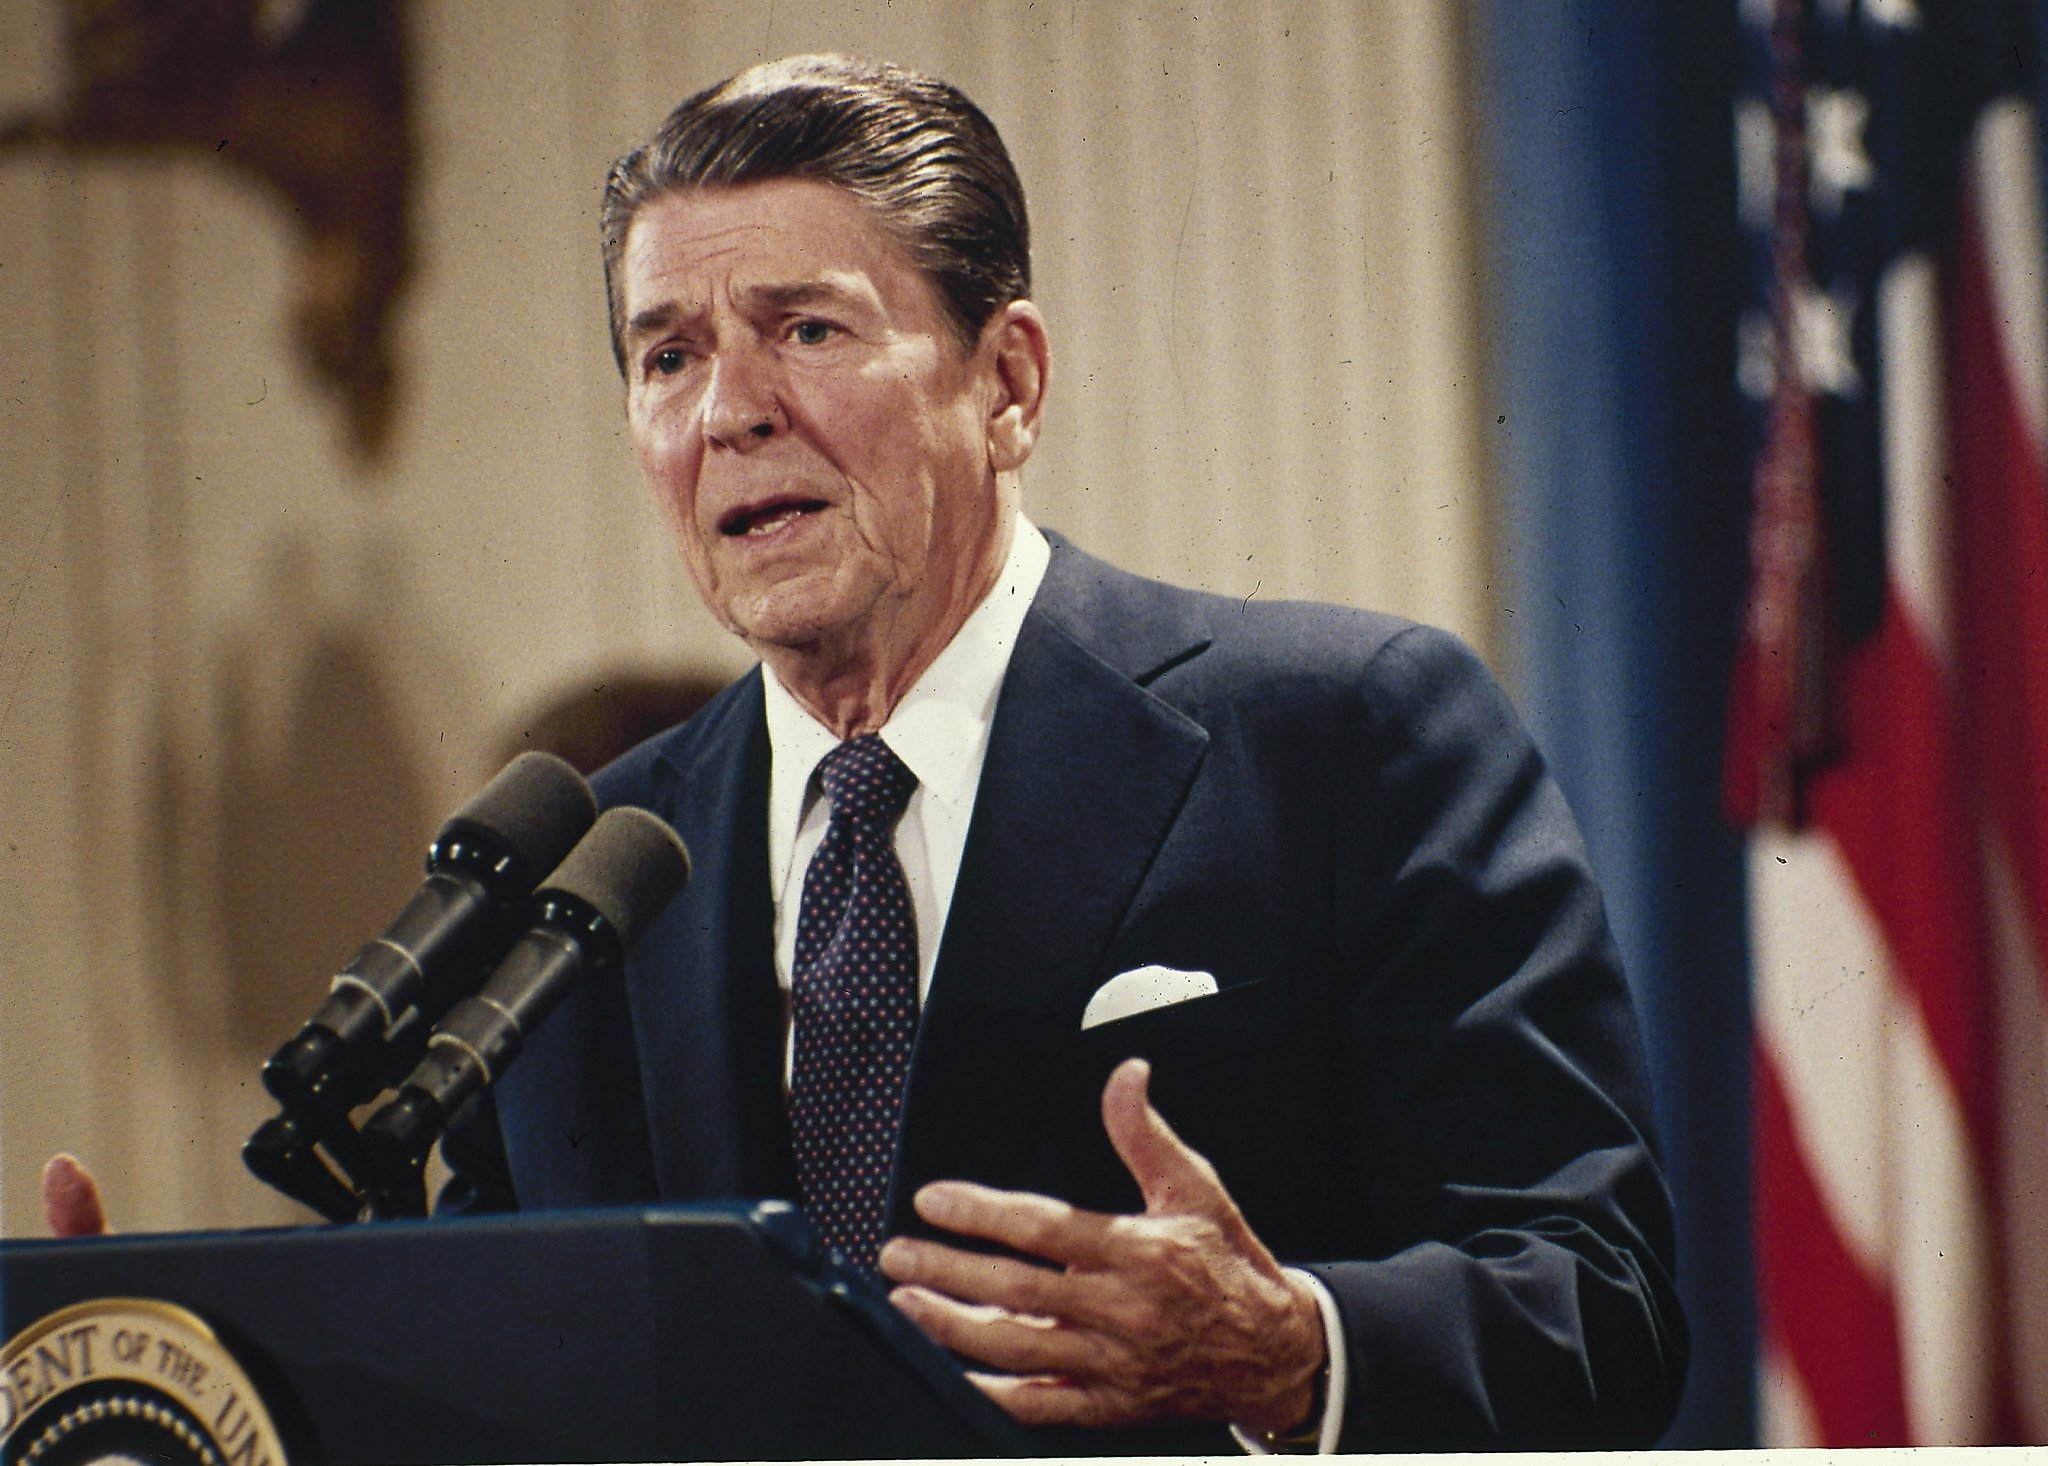 What did Ronald Reagan claim about immigration amnesty